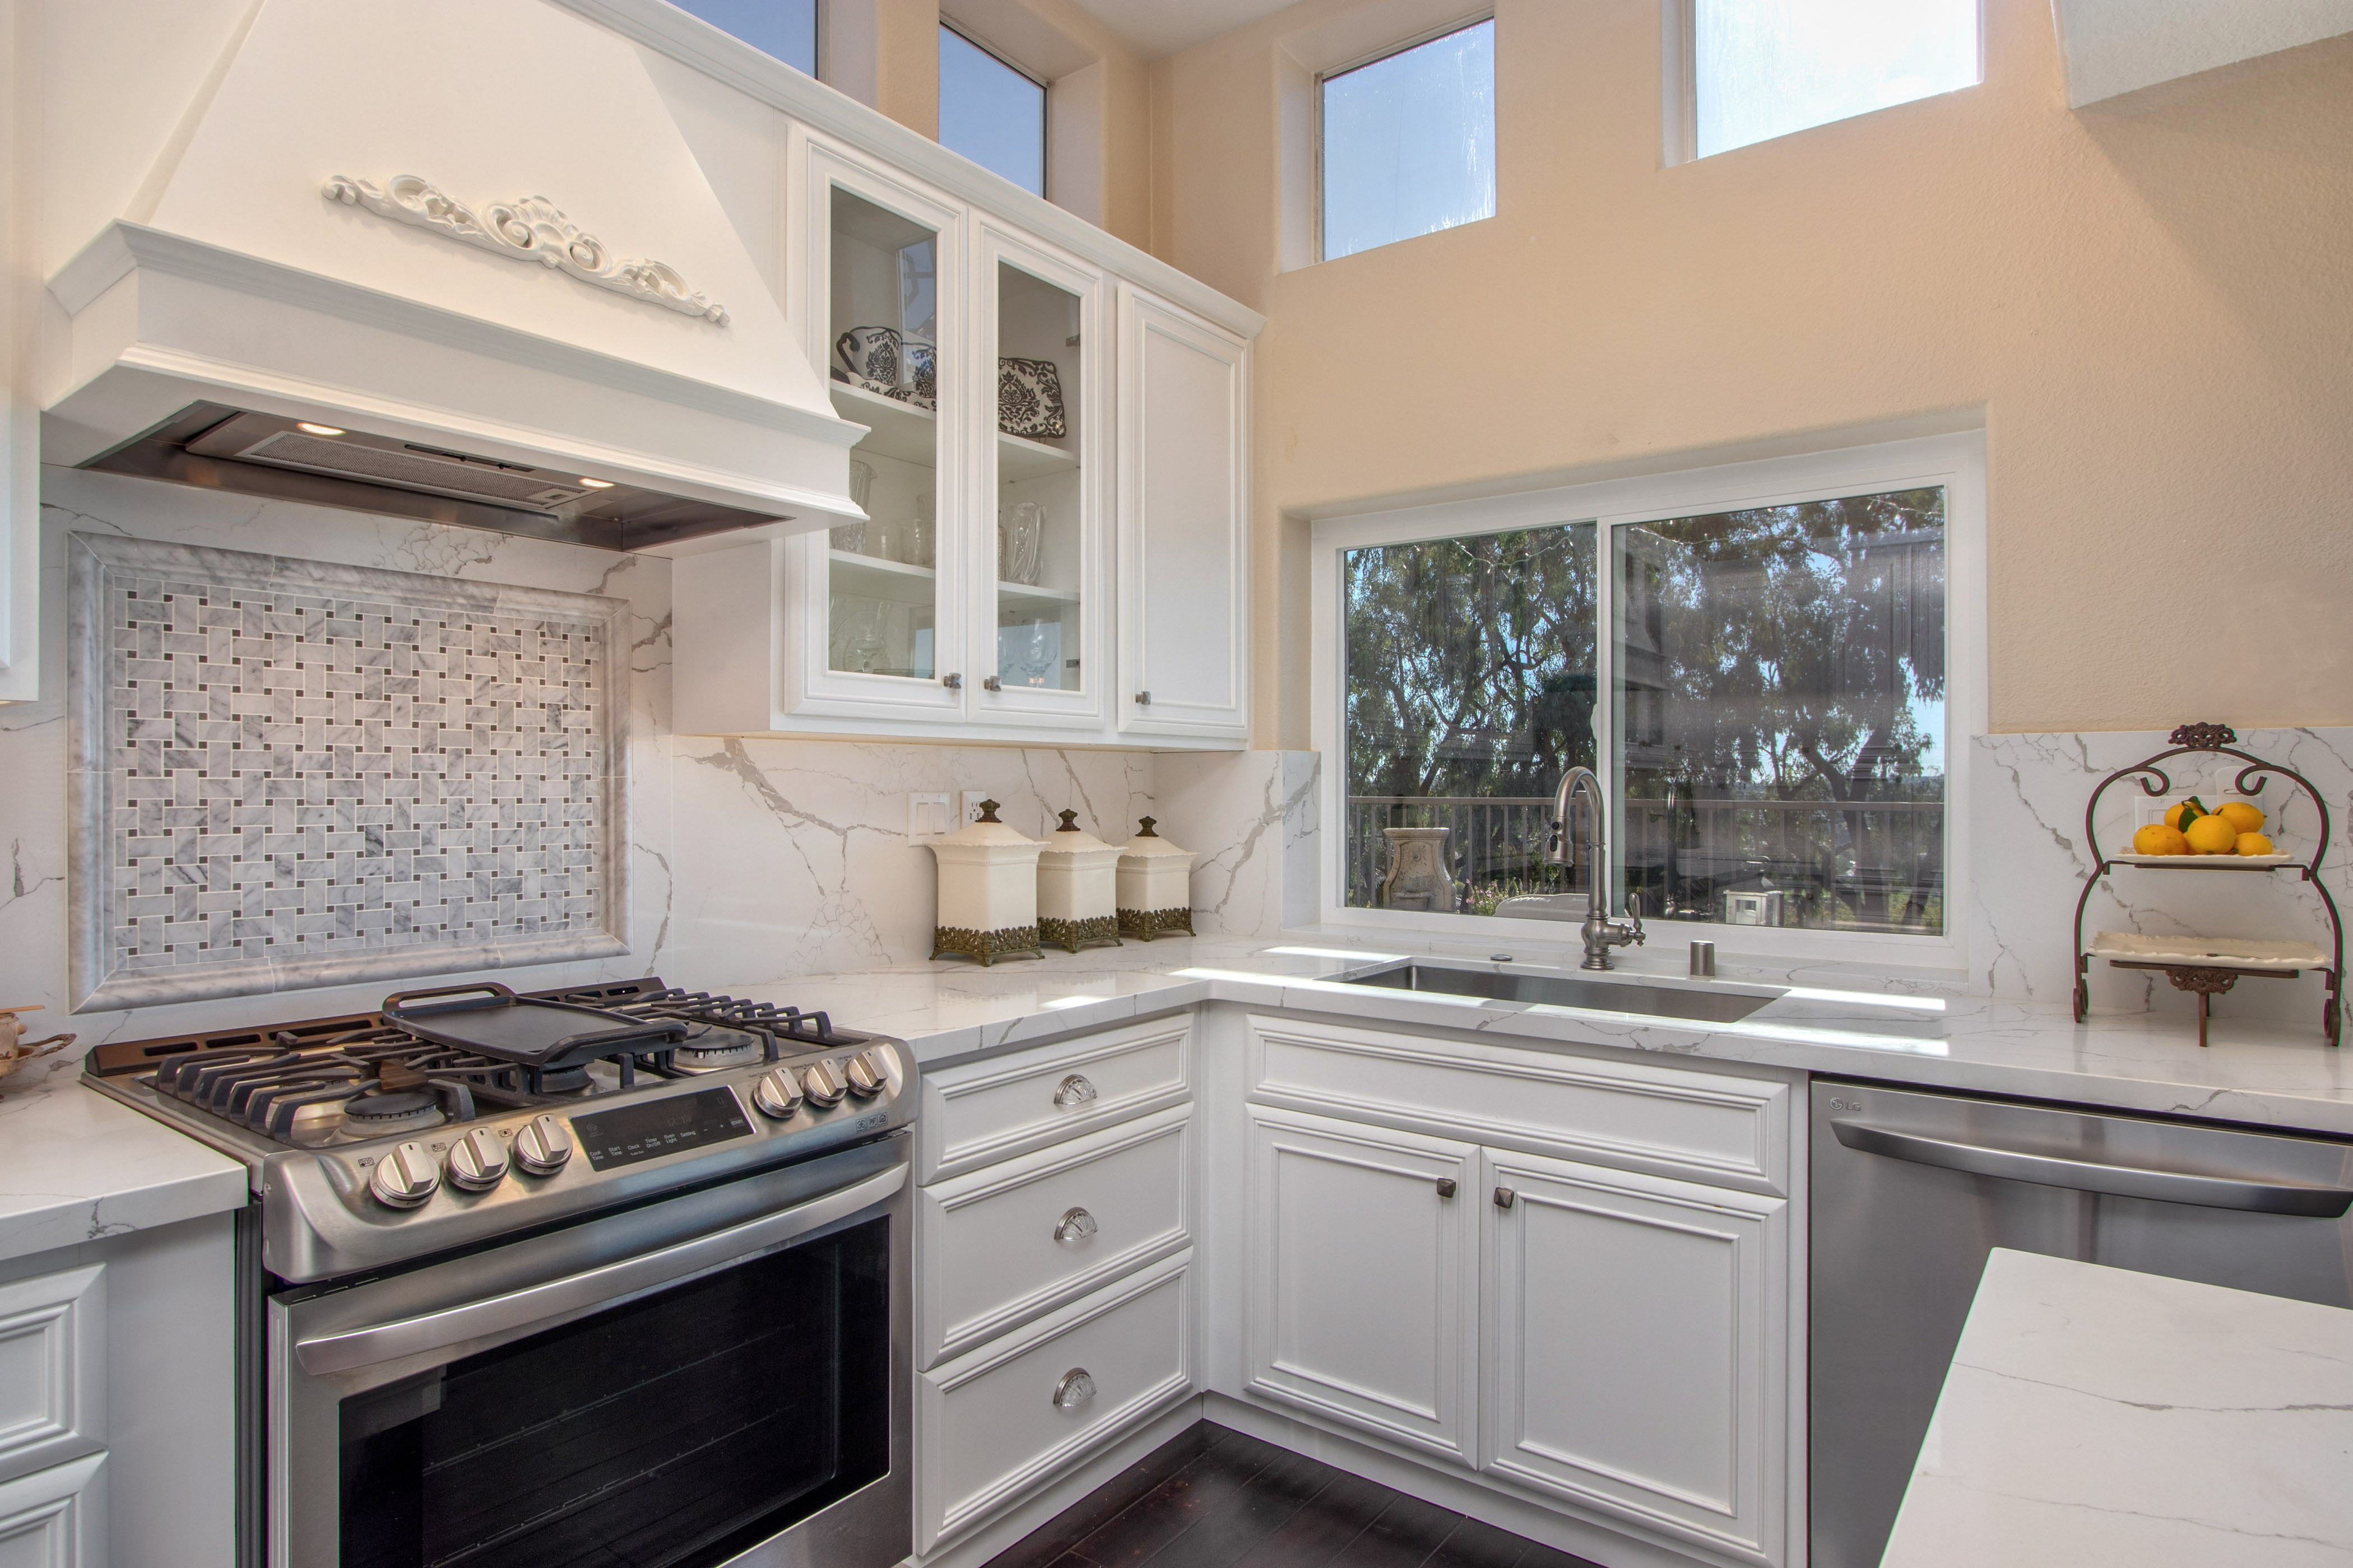 Carlsbad-Cabinet-Refacing-Project-8